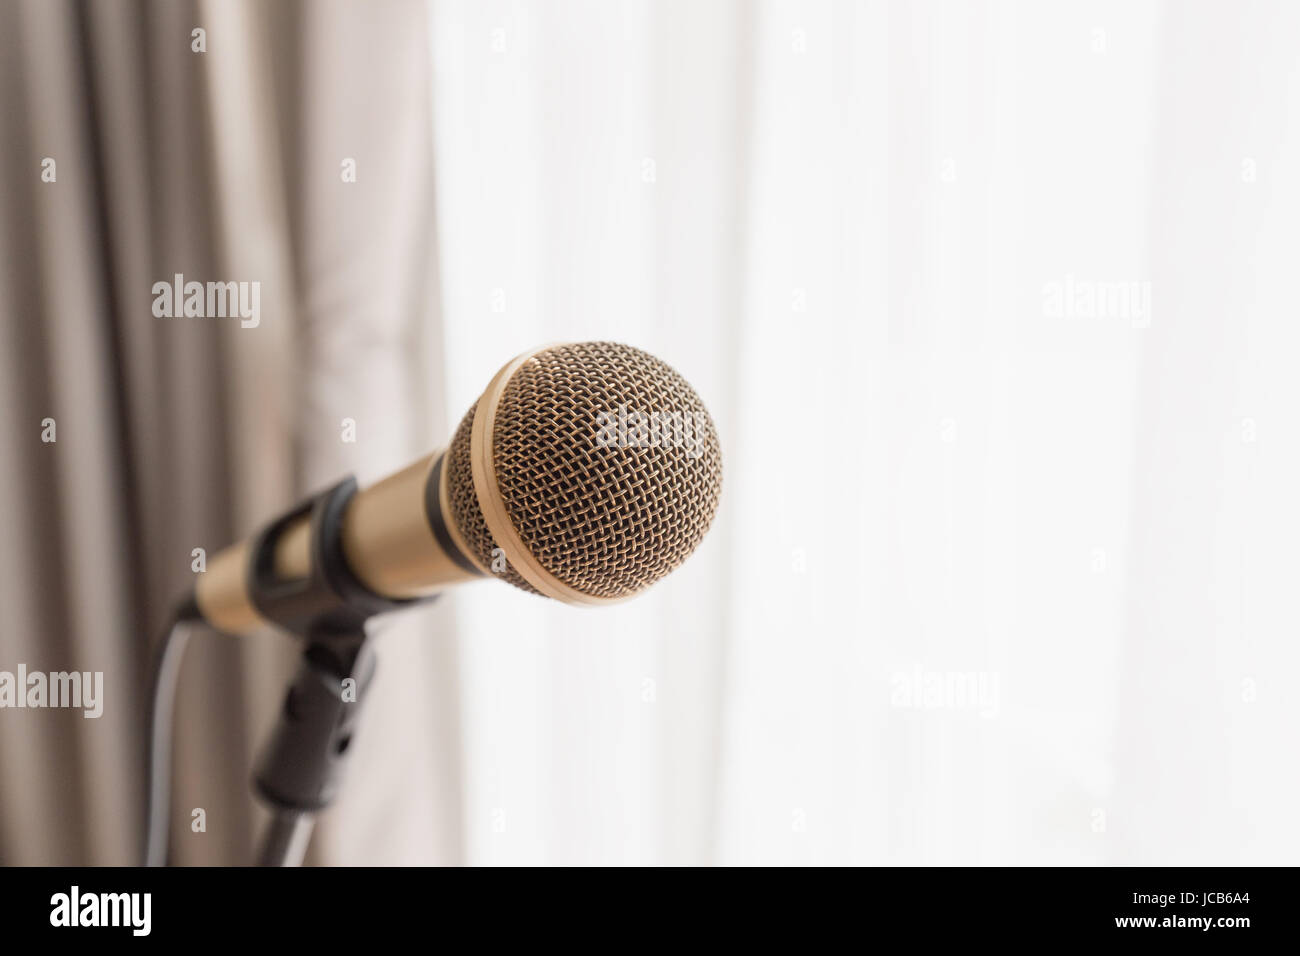 Close focus on classic gold wired microphone on stand with bright light from window. - Stock Image